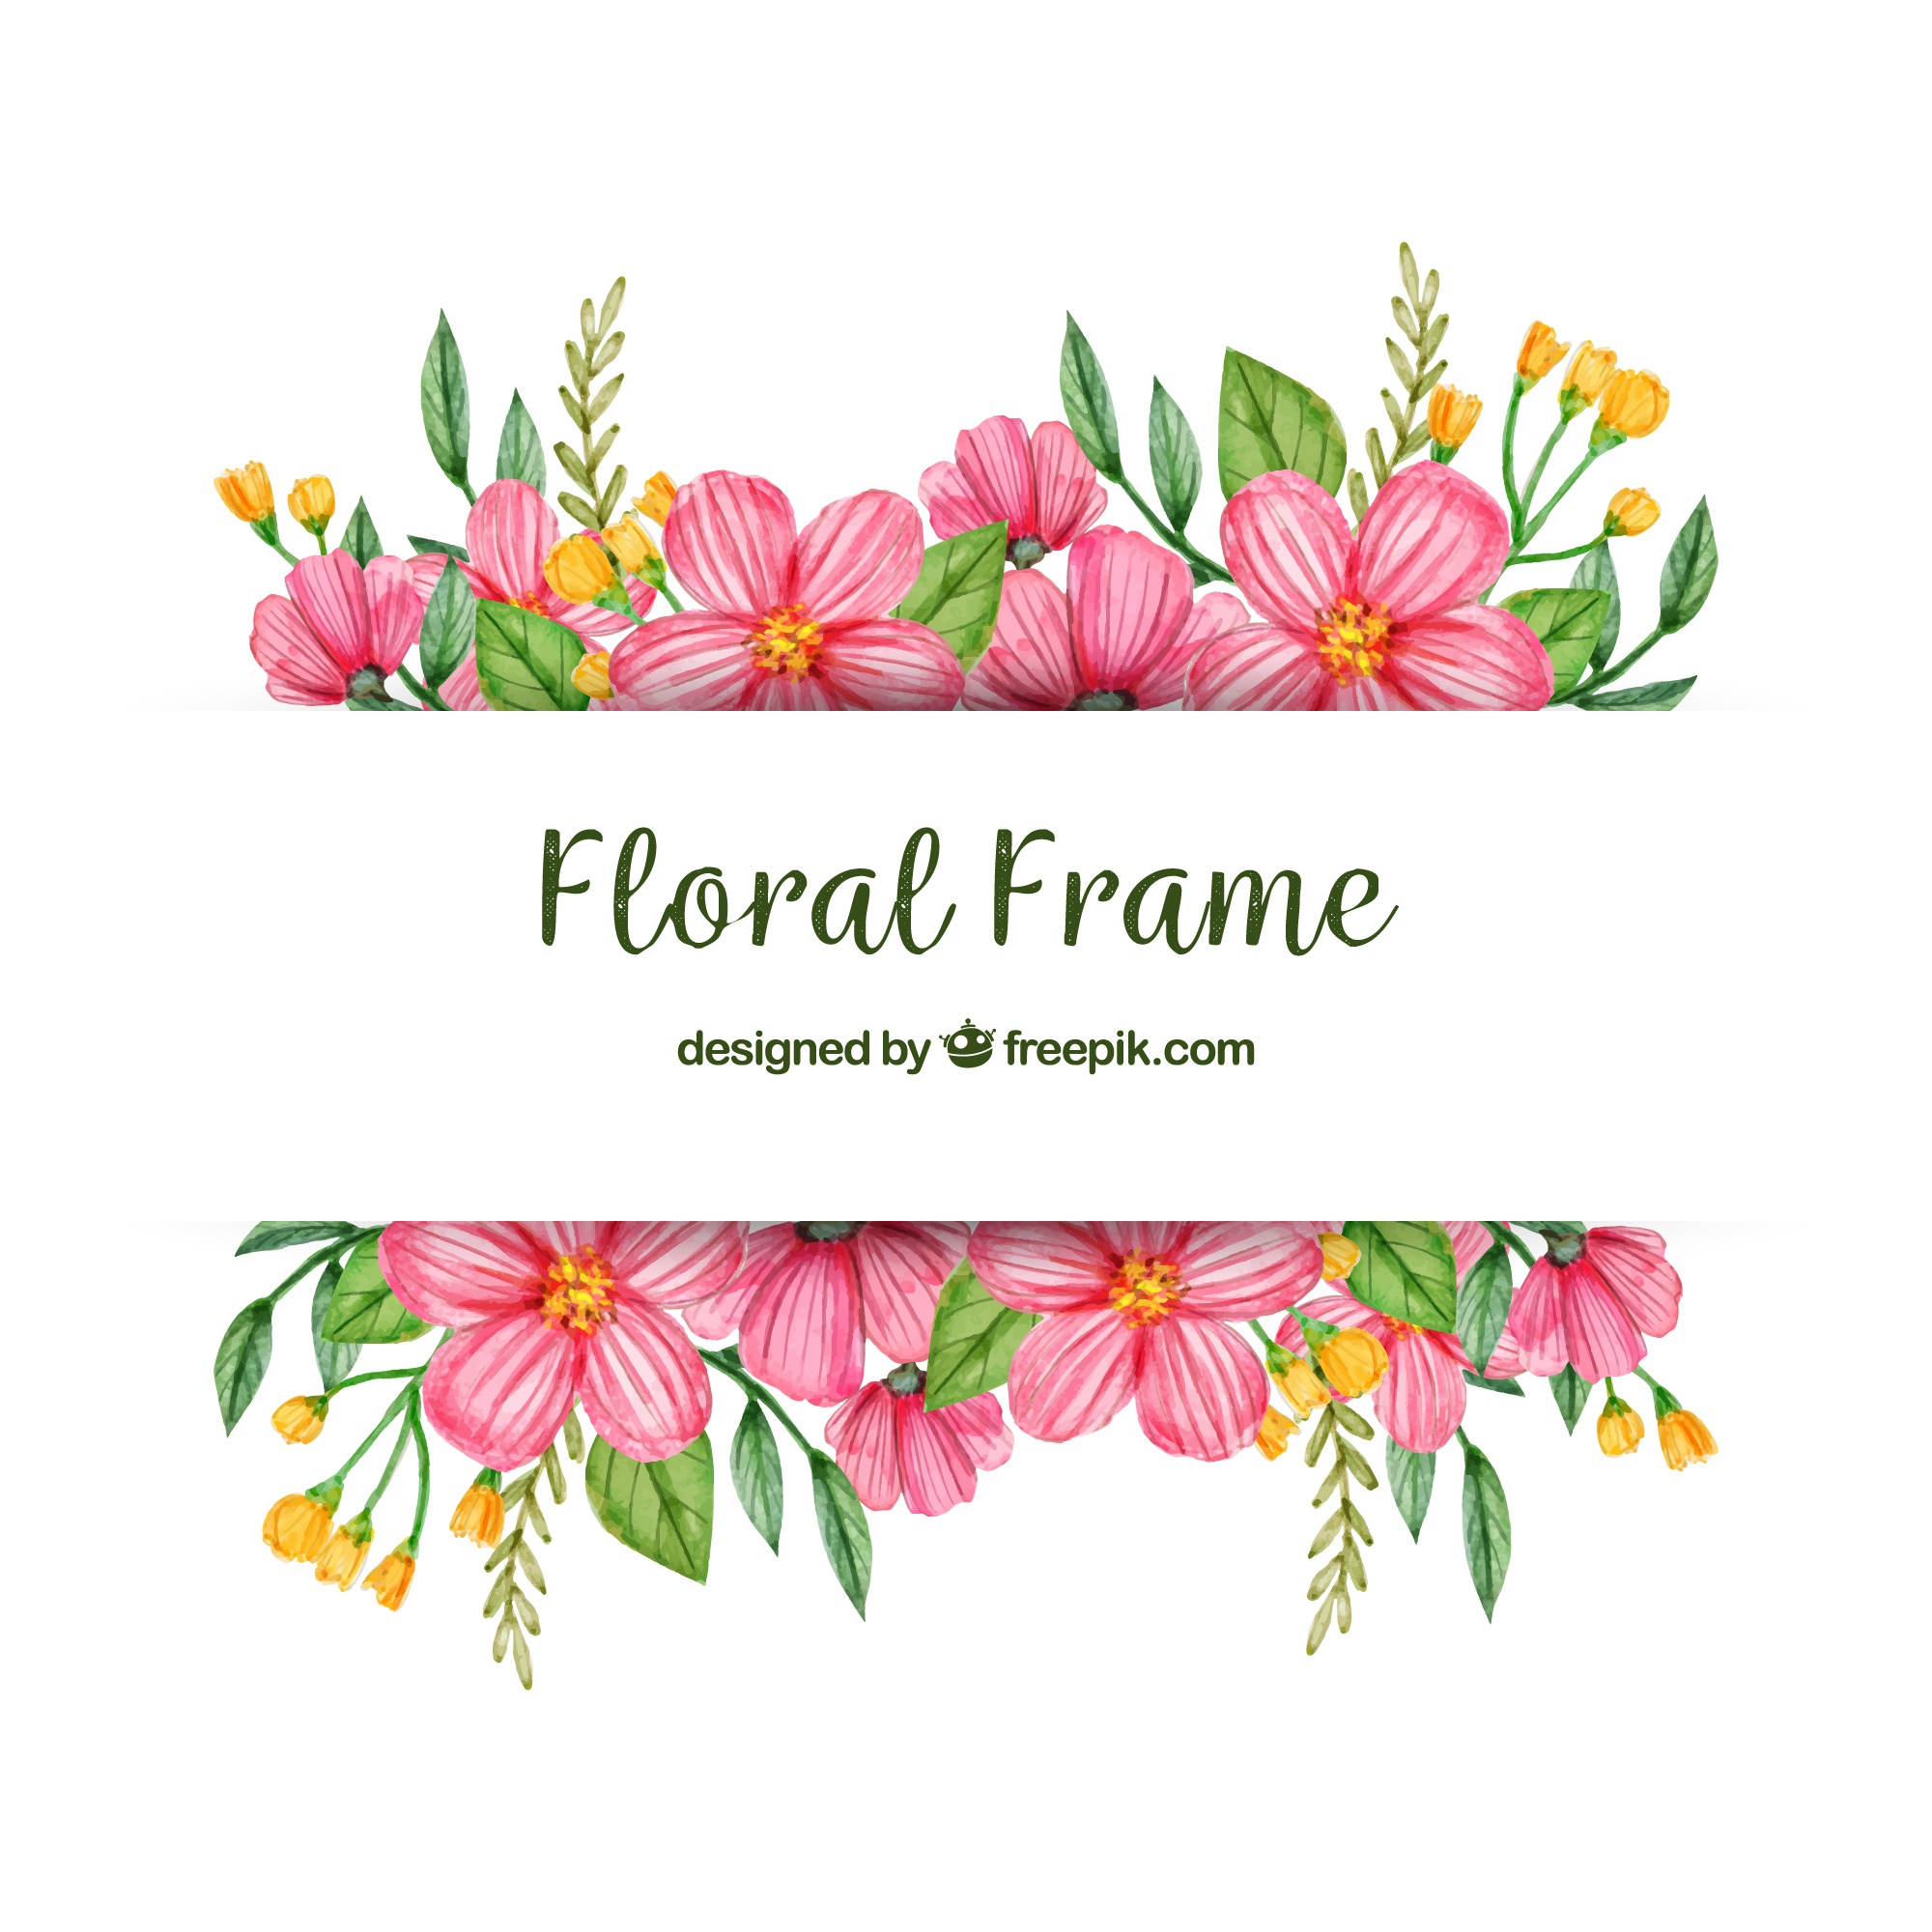 Watercolor floral frame with colorful style